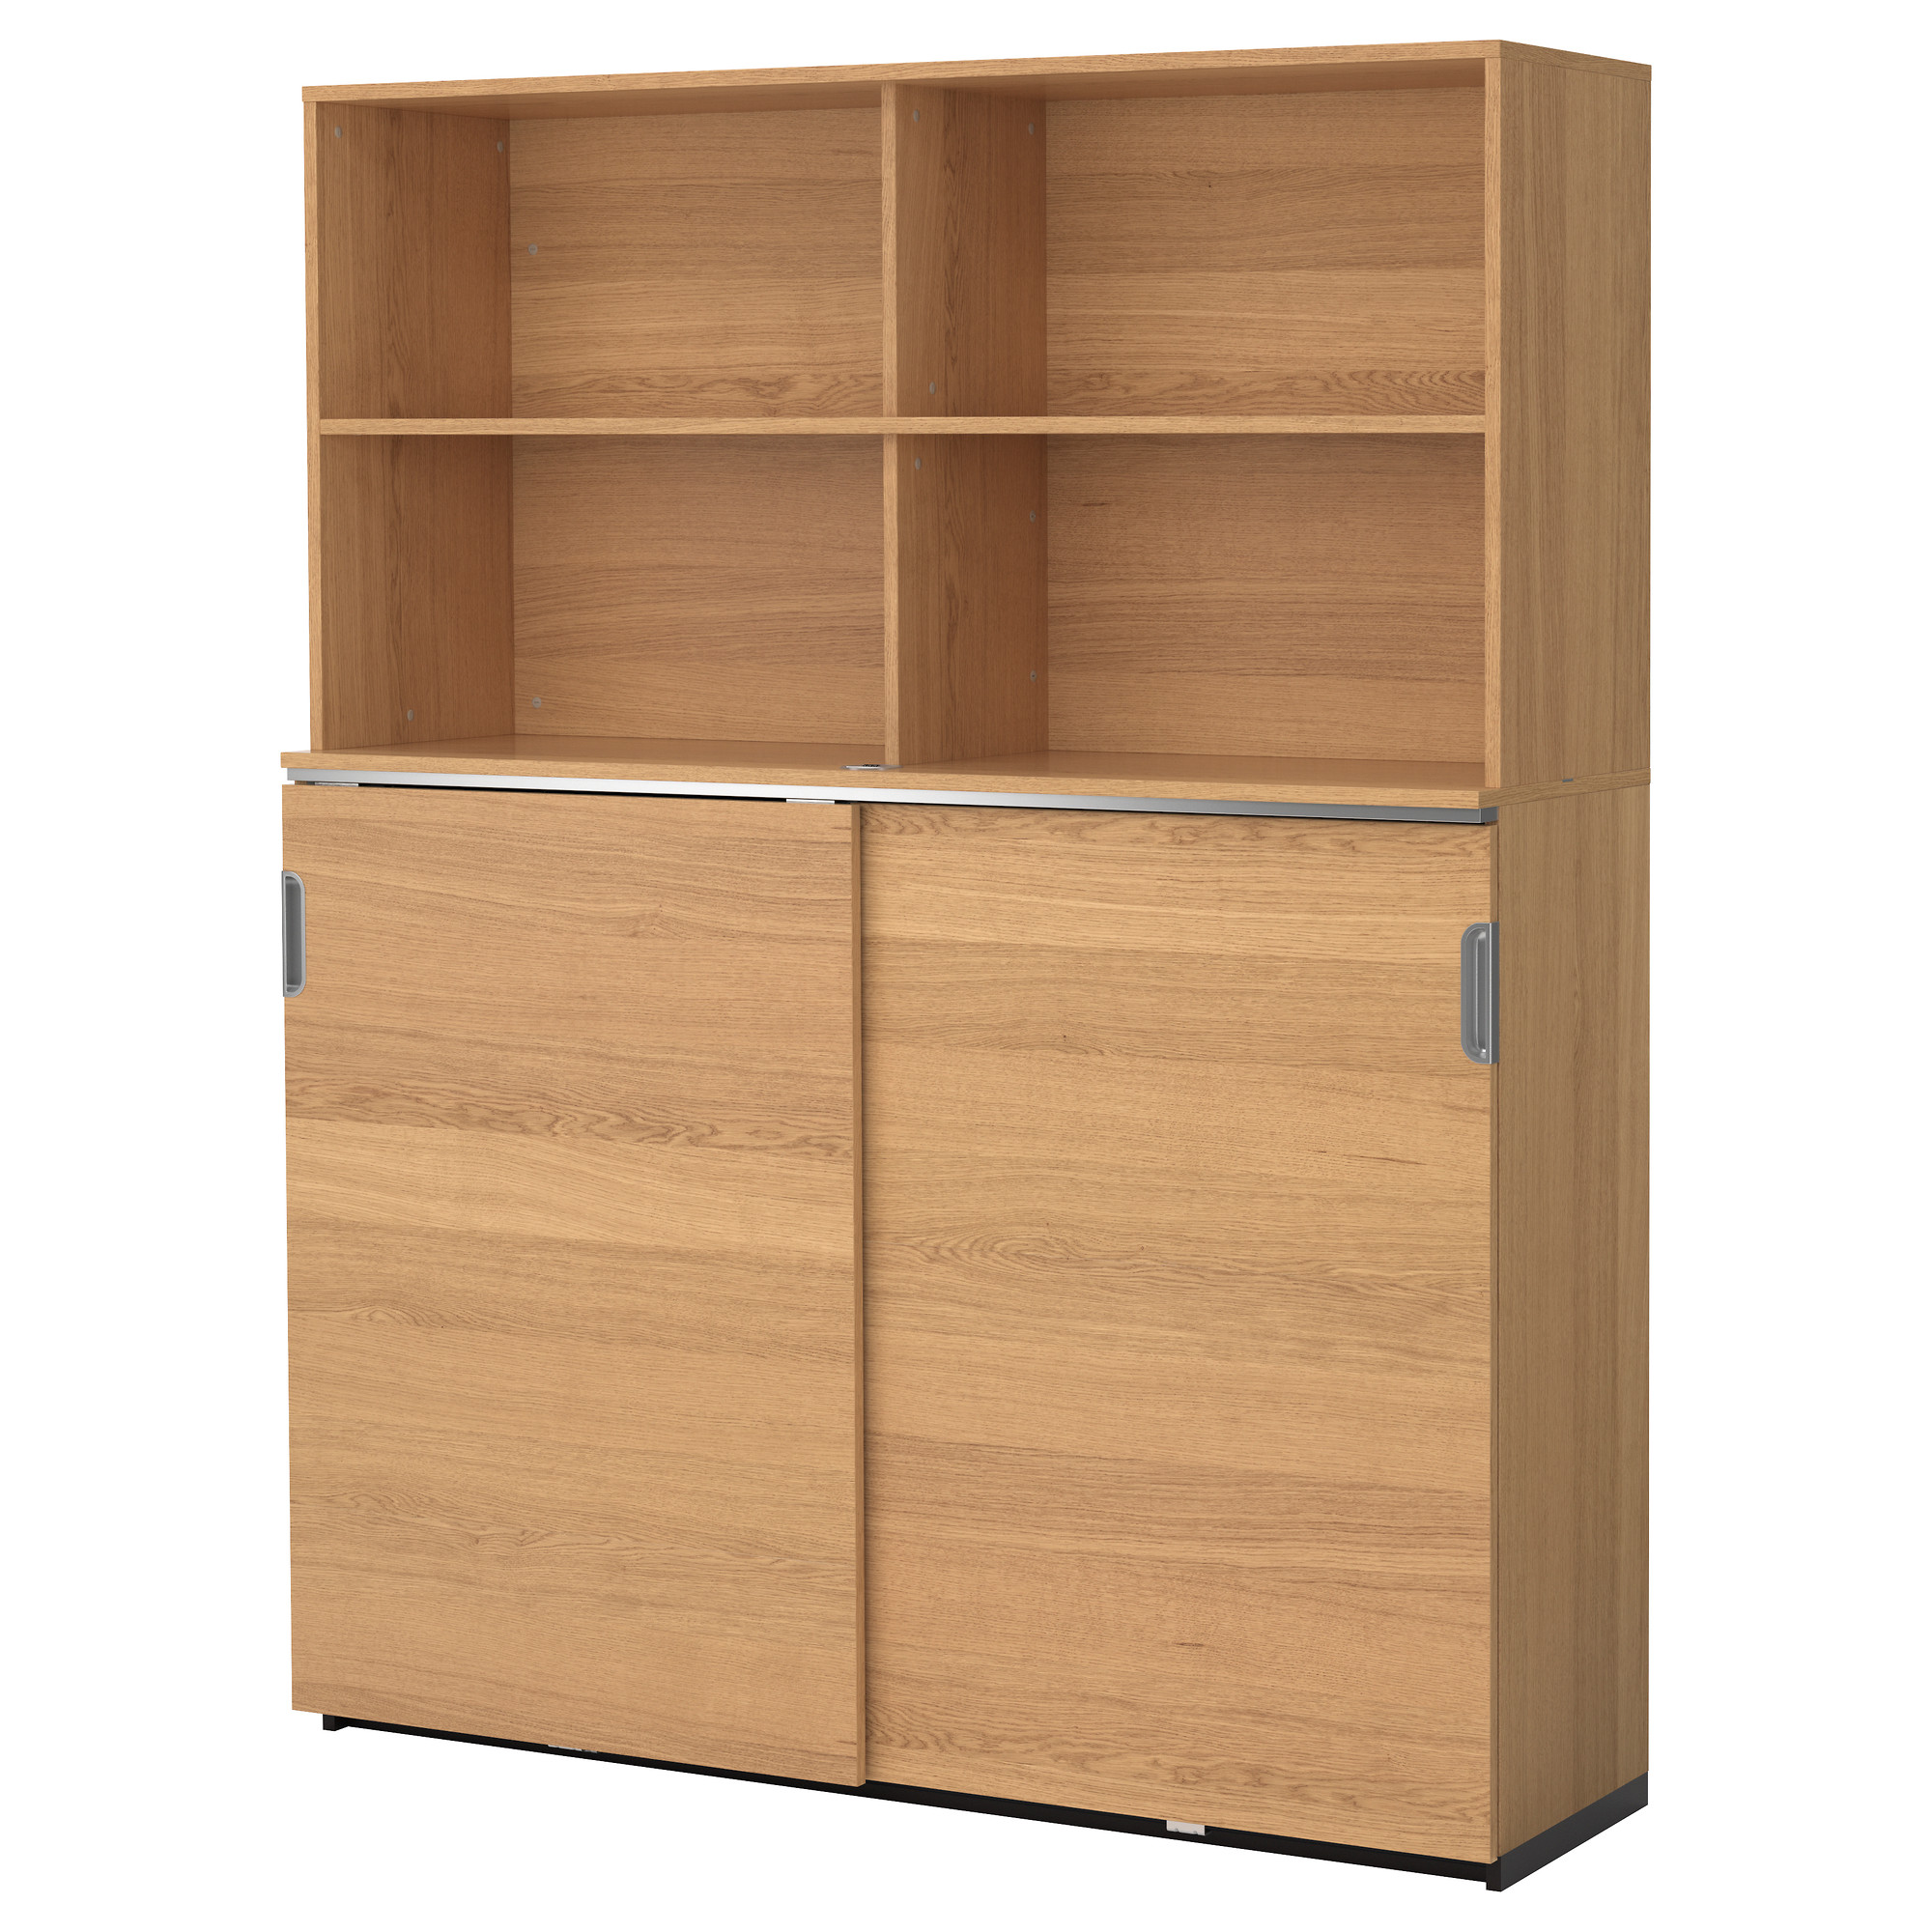 wood office cabinets with doors. wood filing cabinet ikea with shelves and sliding doors plus metal handles for home office furniture cabinets s